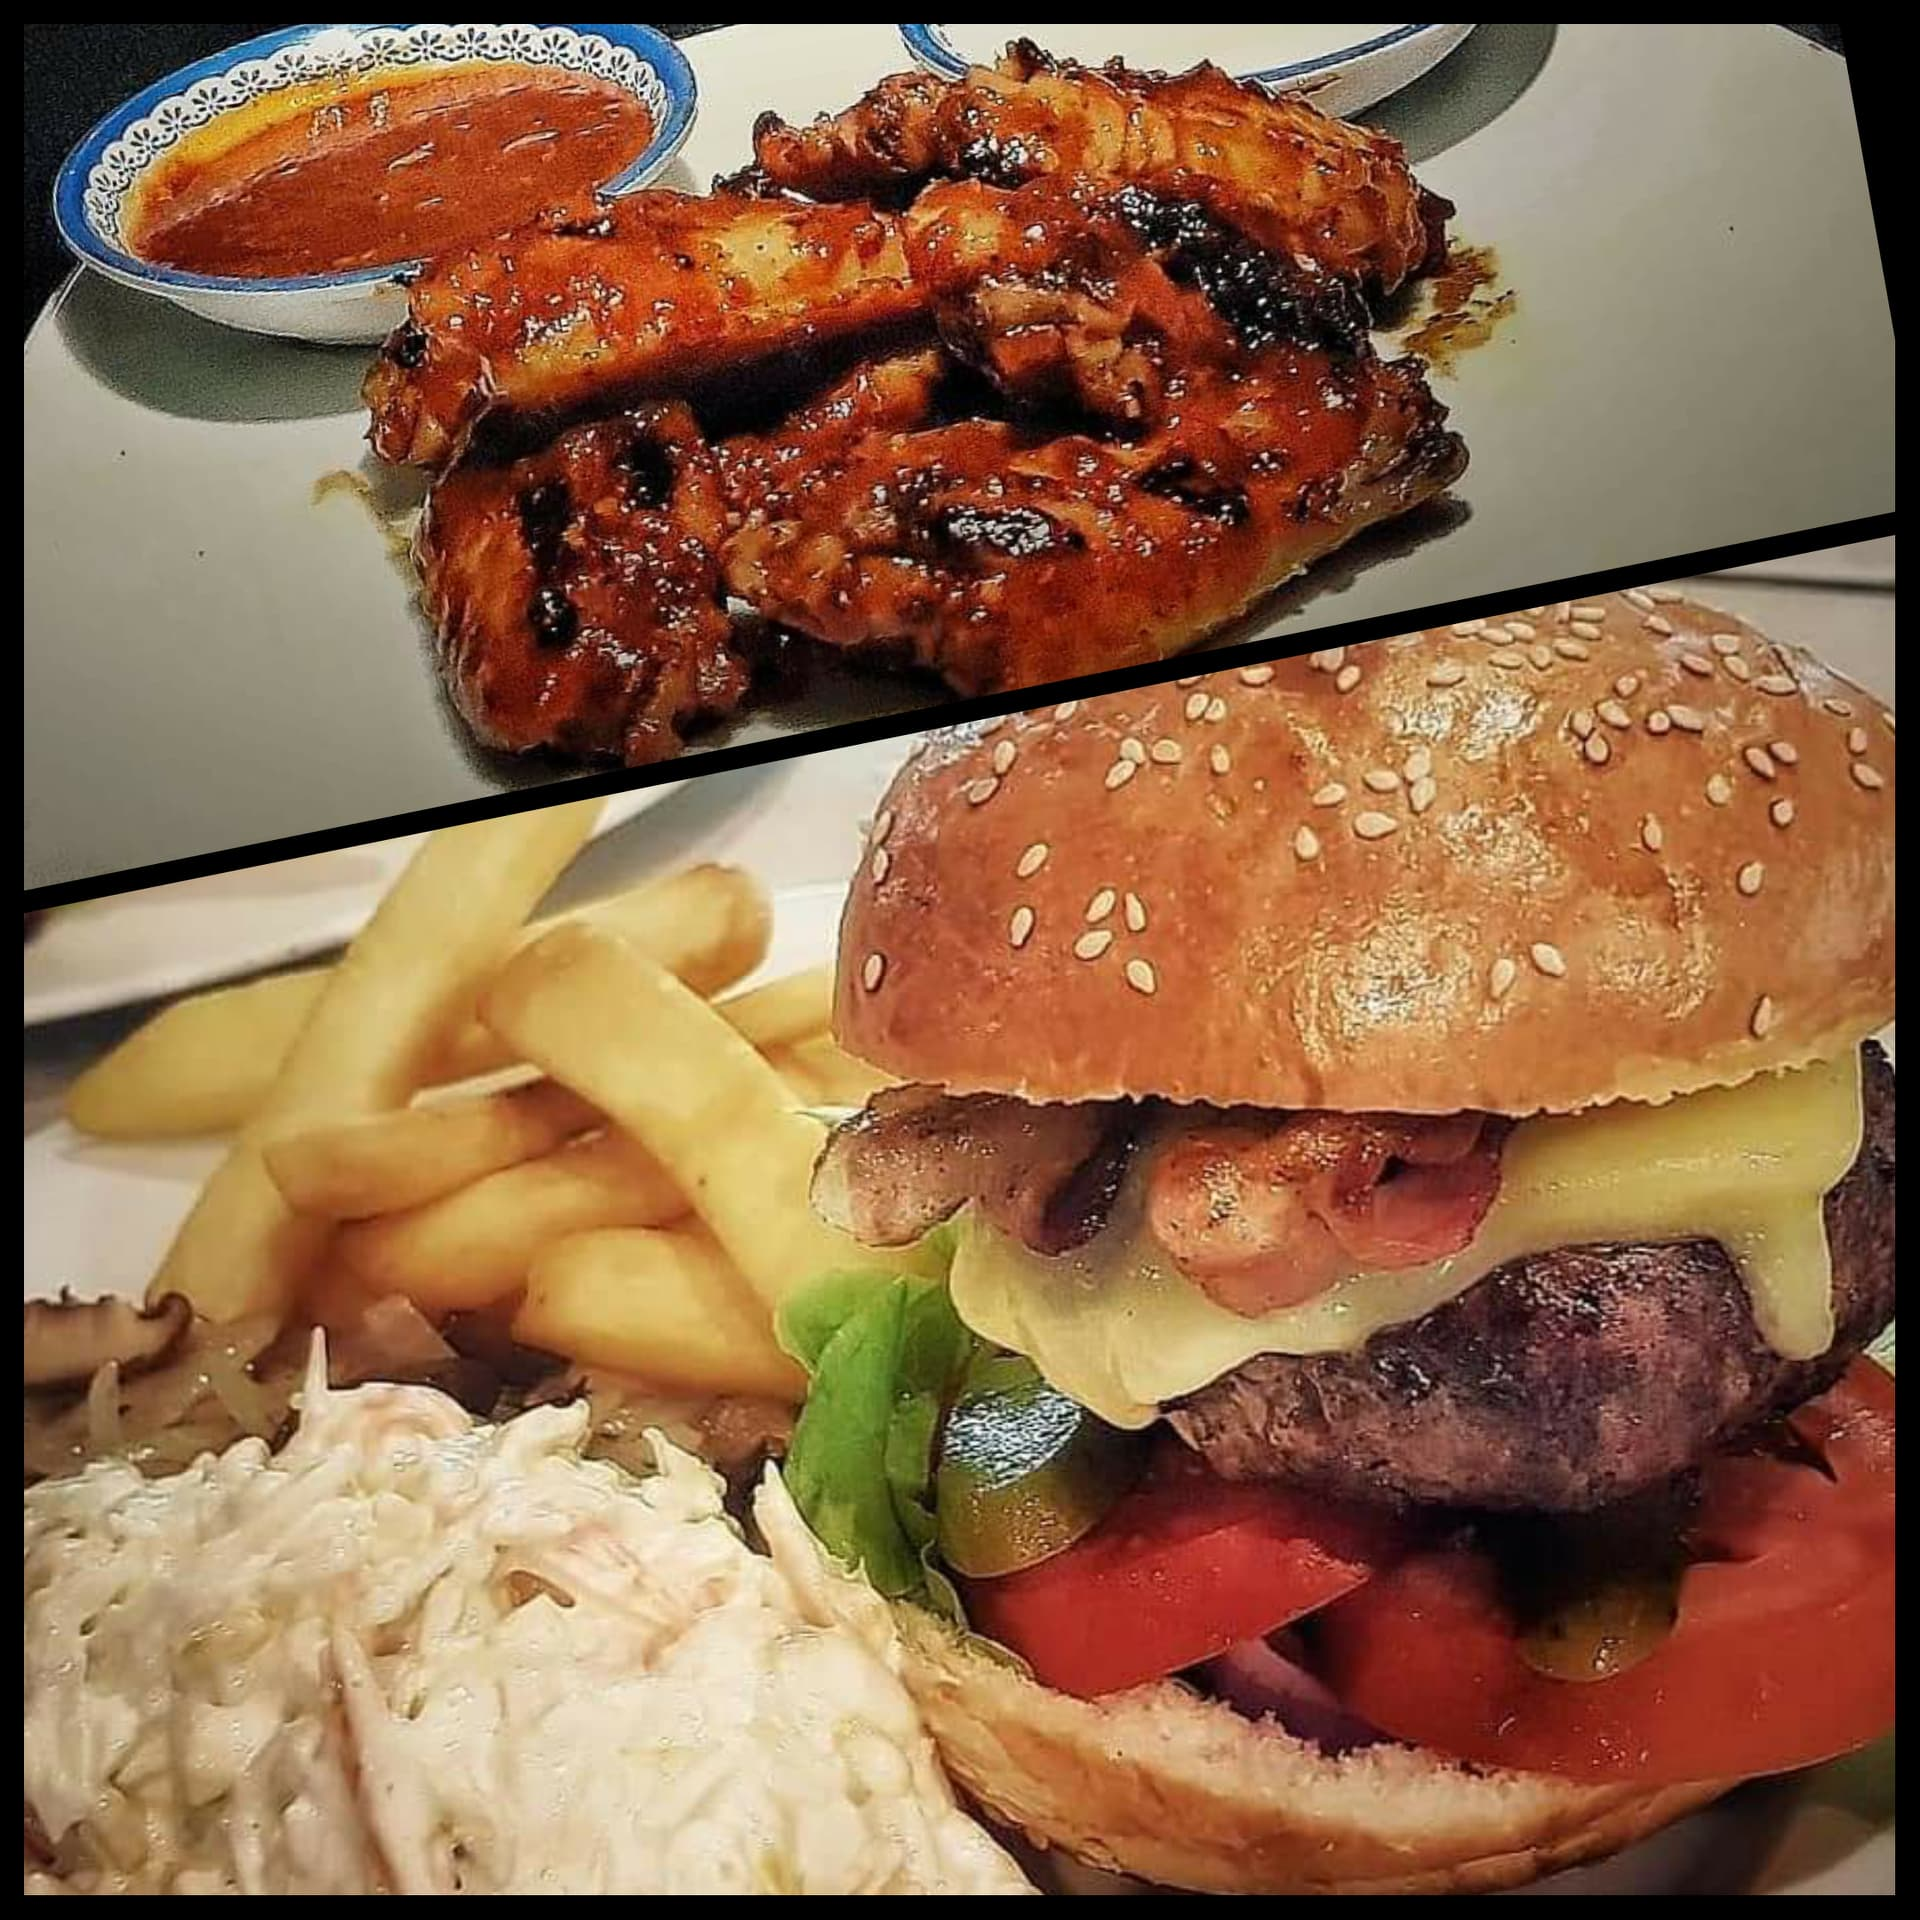 250g All American Burger Inc Sides & Buffalo HOT Wings Deal!